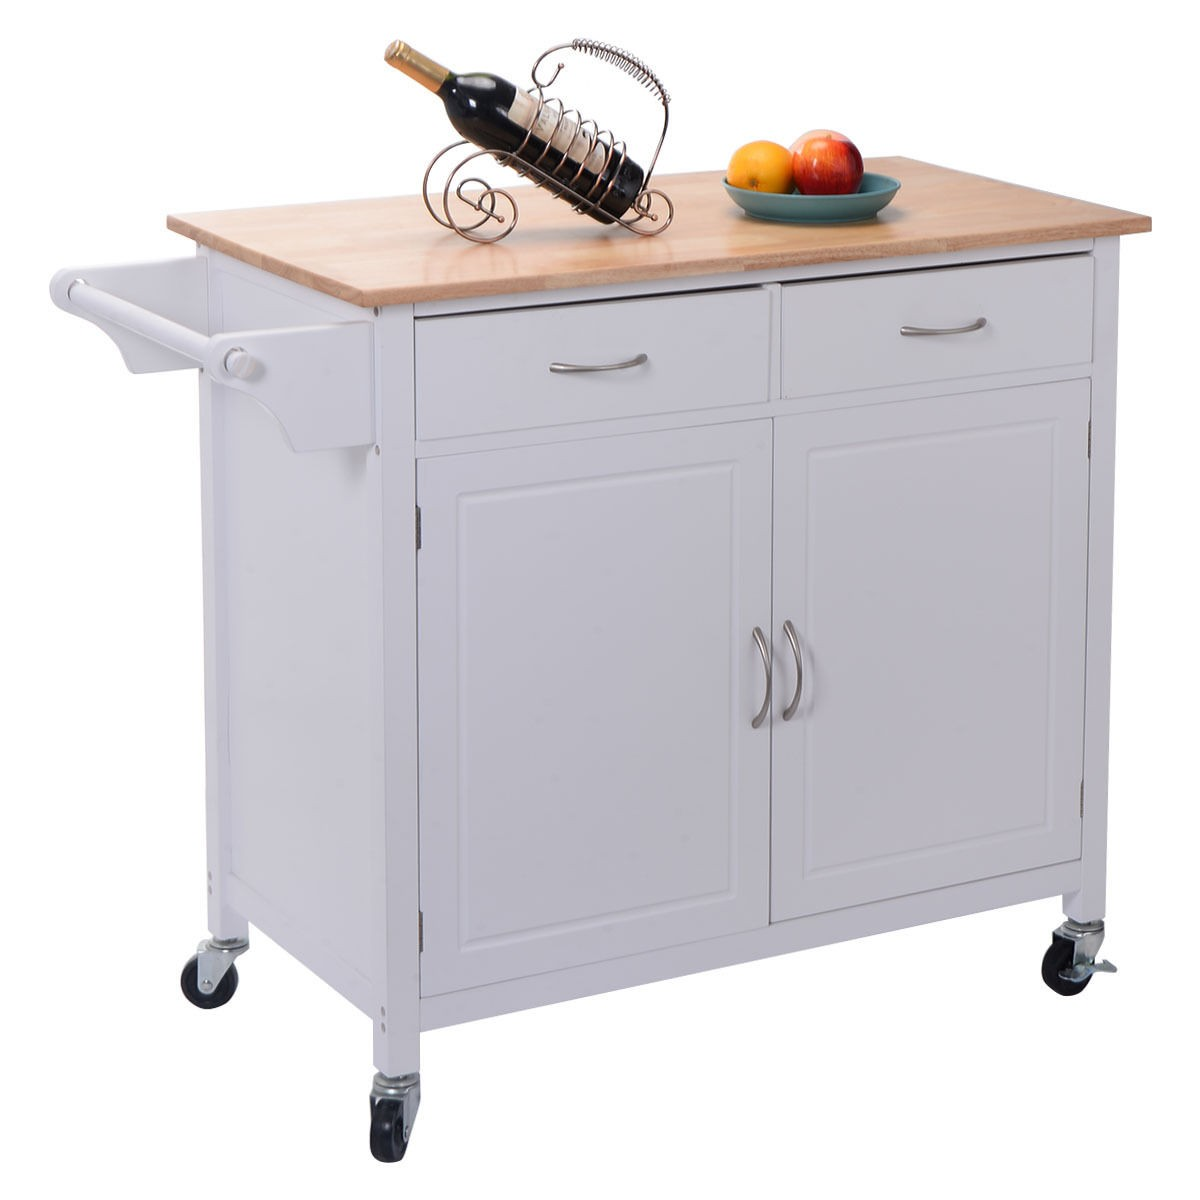 Us portable kitchen rolling cart wood island serving Kitchen utility island